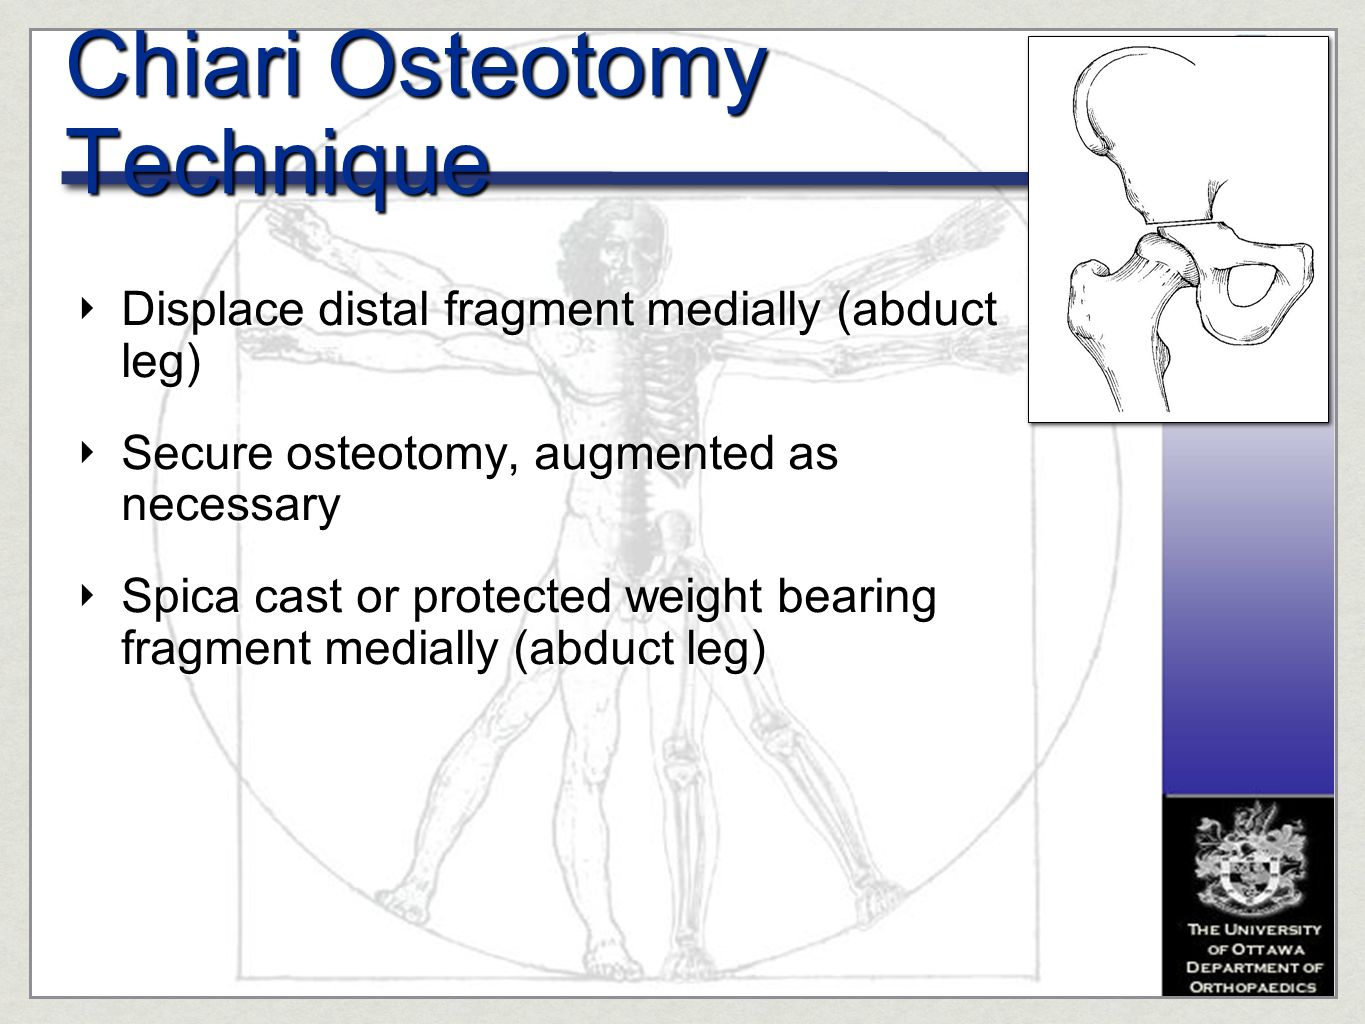 Chiari Osteotomy Technique